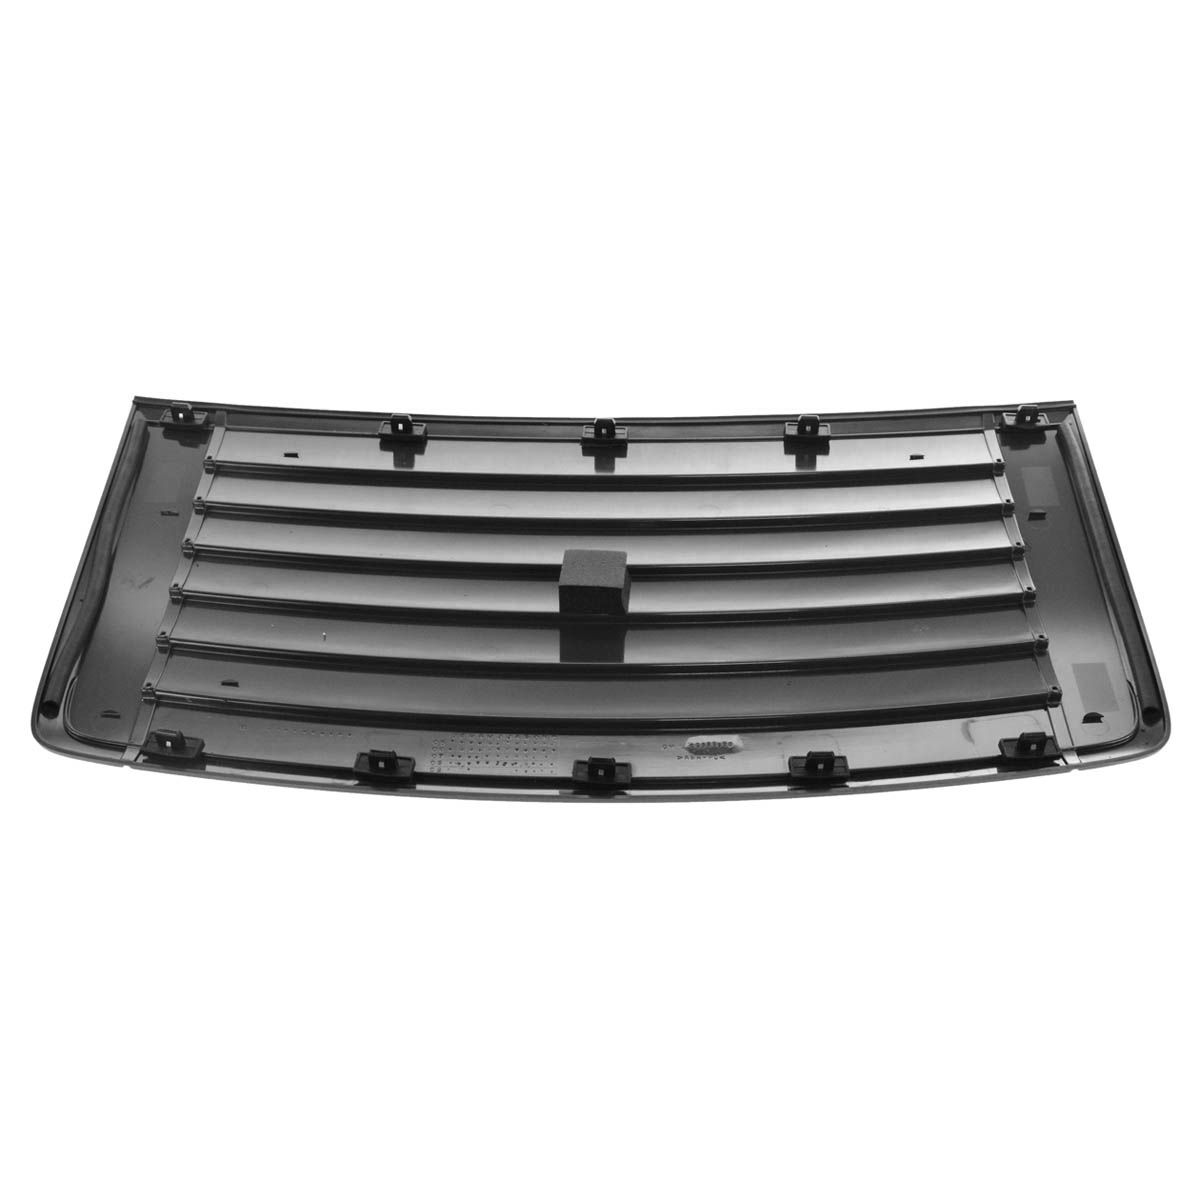 Details about OEM 14 Hood Air Vent Louver Insert Panel Gray for  Hummer H14 New | hummer h3 hood louver